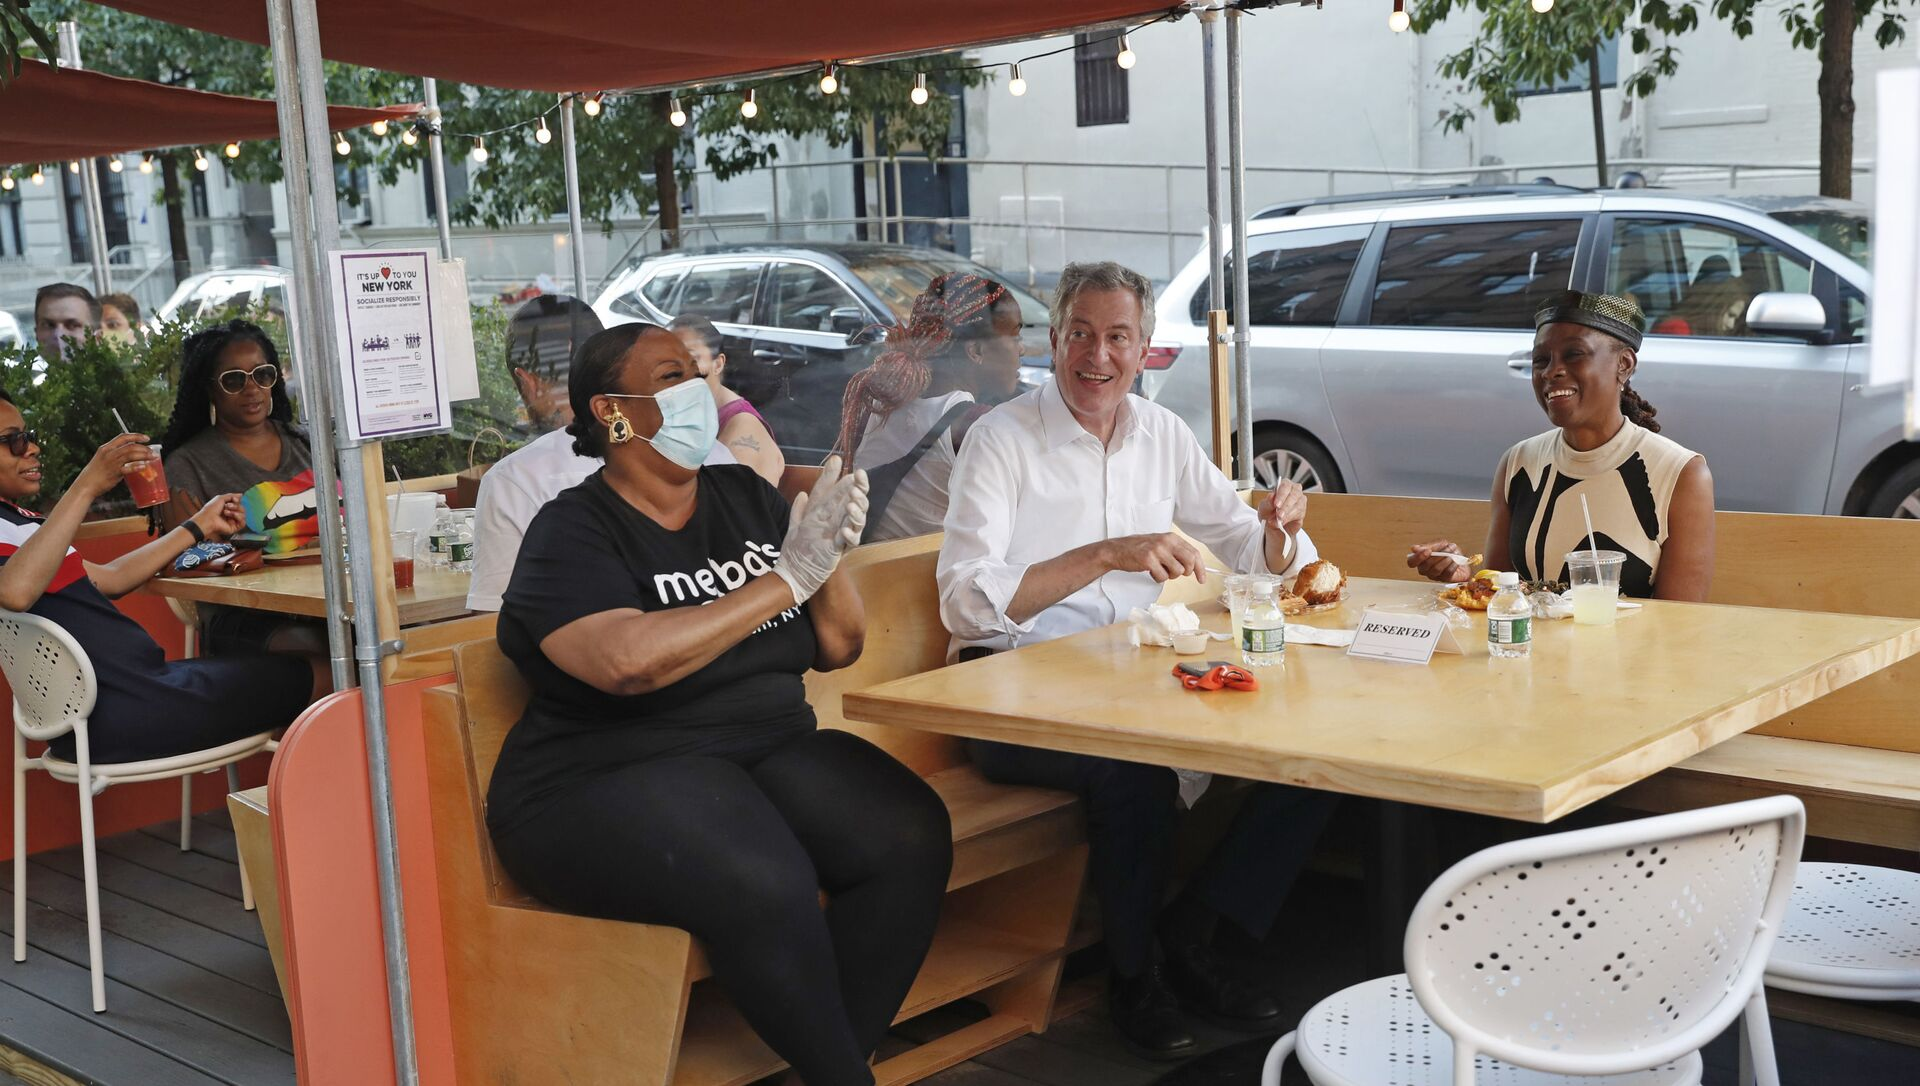 New York Mayor Bill de Blasio, center, laughs as he talks to the parents of a six-year-old child who thanked him for reopening the city's playgrounds as he dined in an outdoor booth with wife Chirlane McCray, right, and restaurant owner Melba Wilson at Melba's in Harlem on the first day of the Phase 2 reopening of the city during the coronavirus pandemic Monday, June 22, 2020, in New York. - Sputnik International, 1920, 04.08.2021